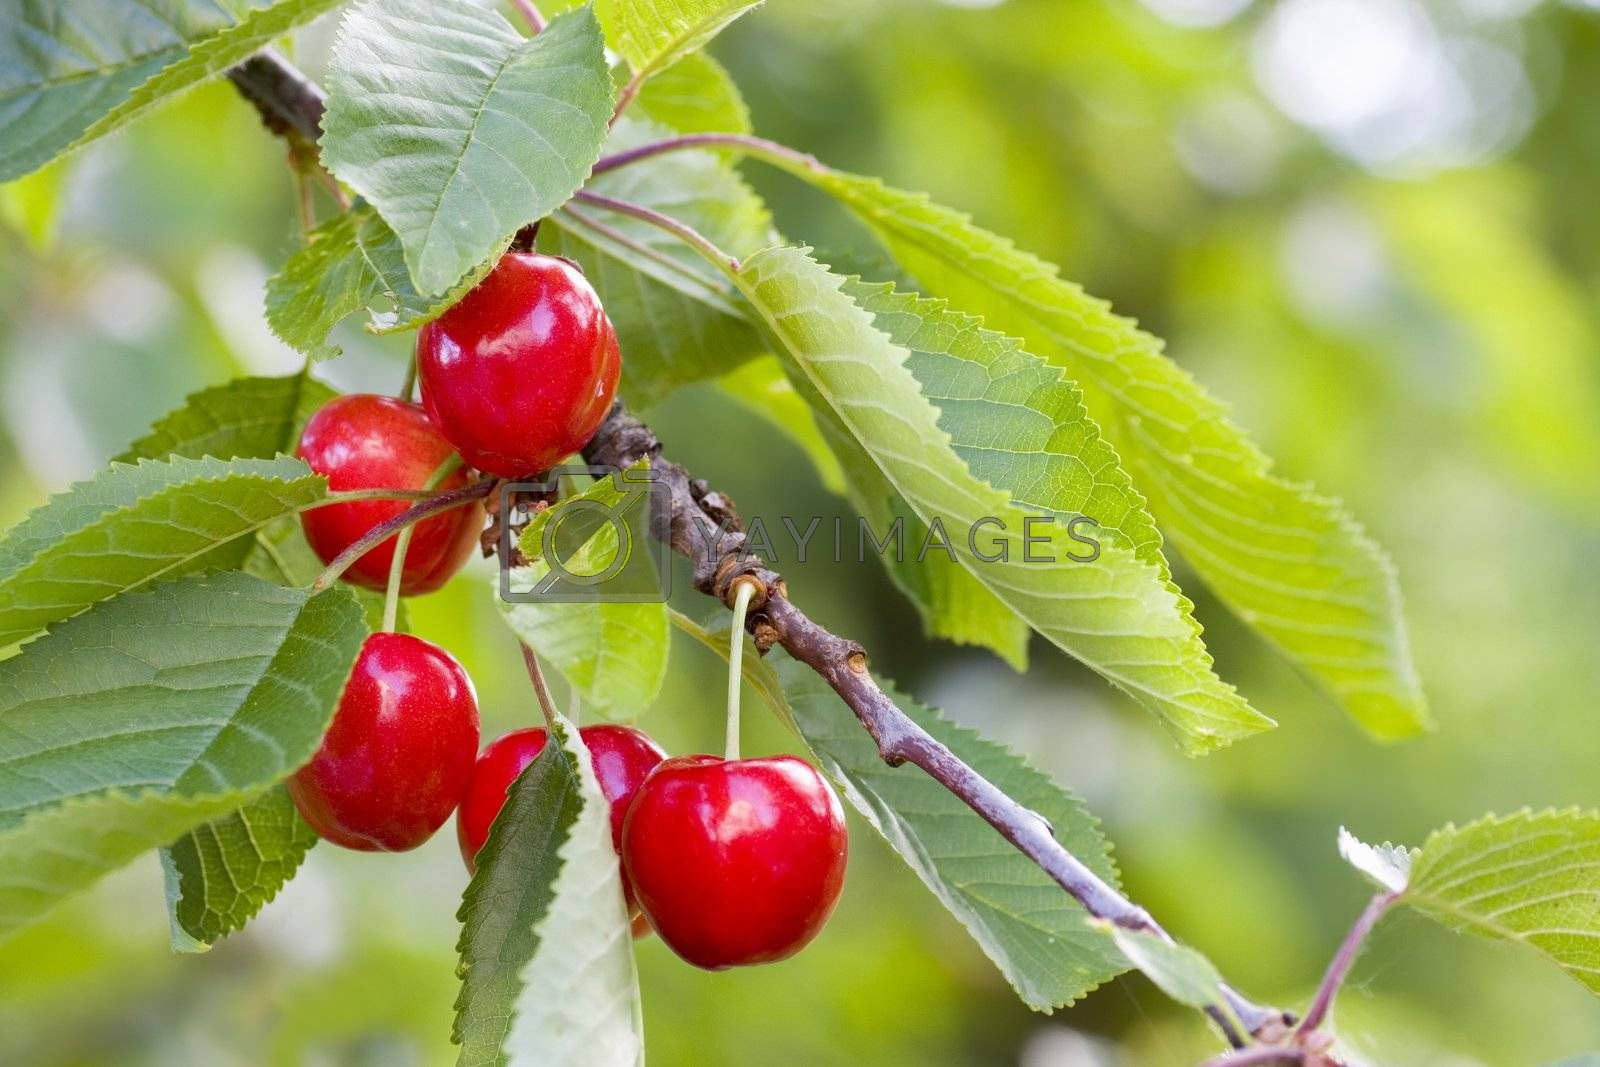 Red ripe cherries hanging on a tree with green leaves